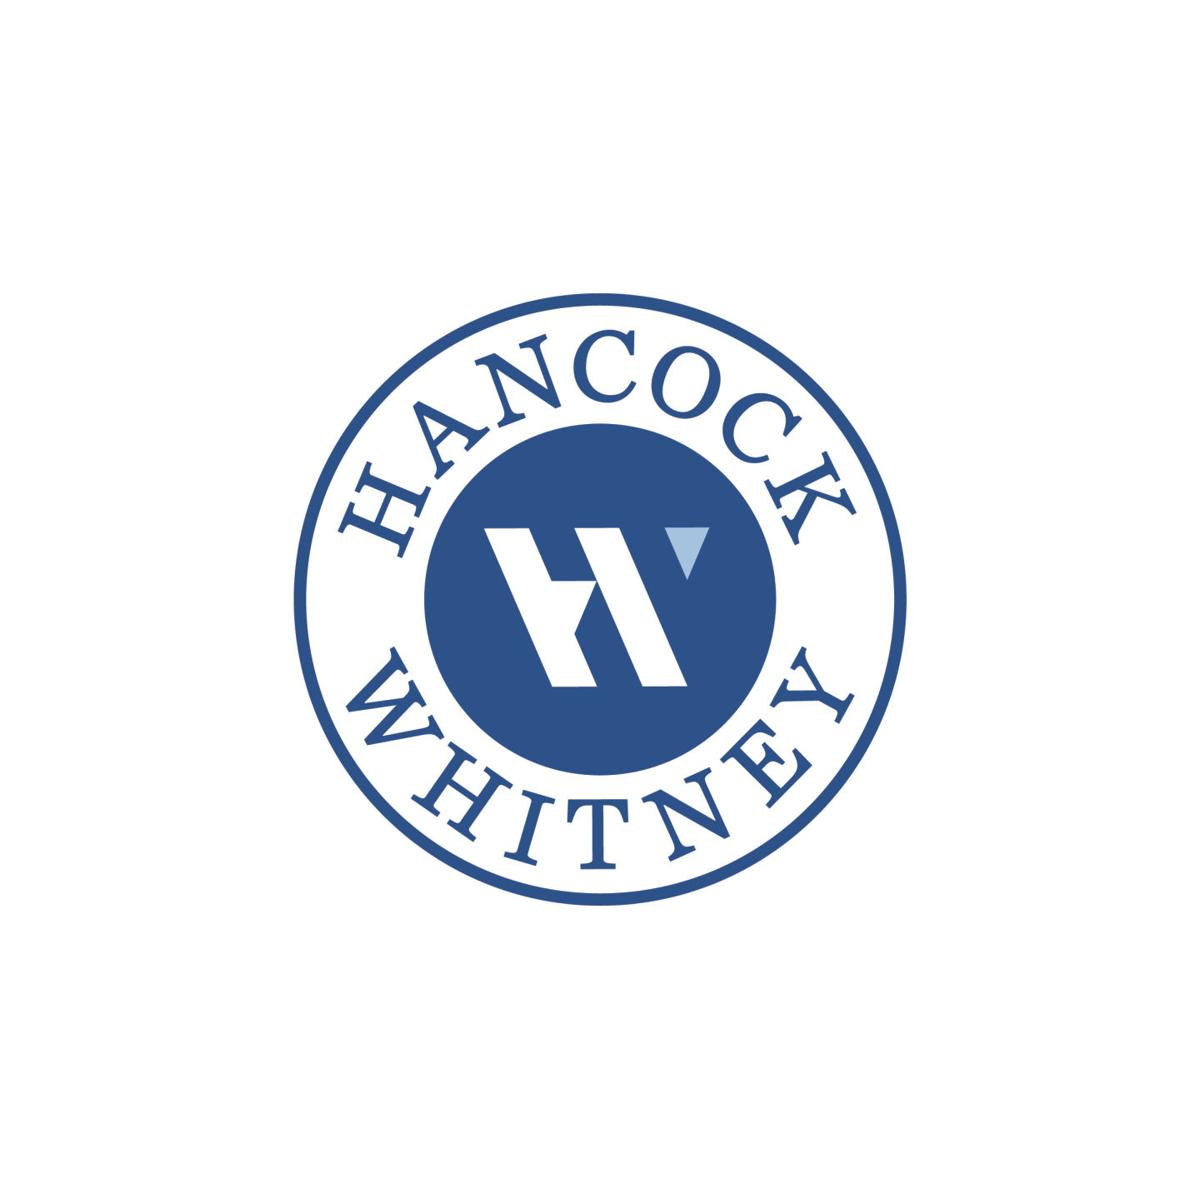 Seven Years After Merger Hancock And Whitney Banks To Have Unified